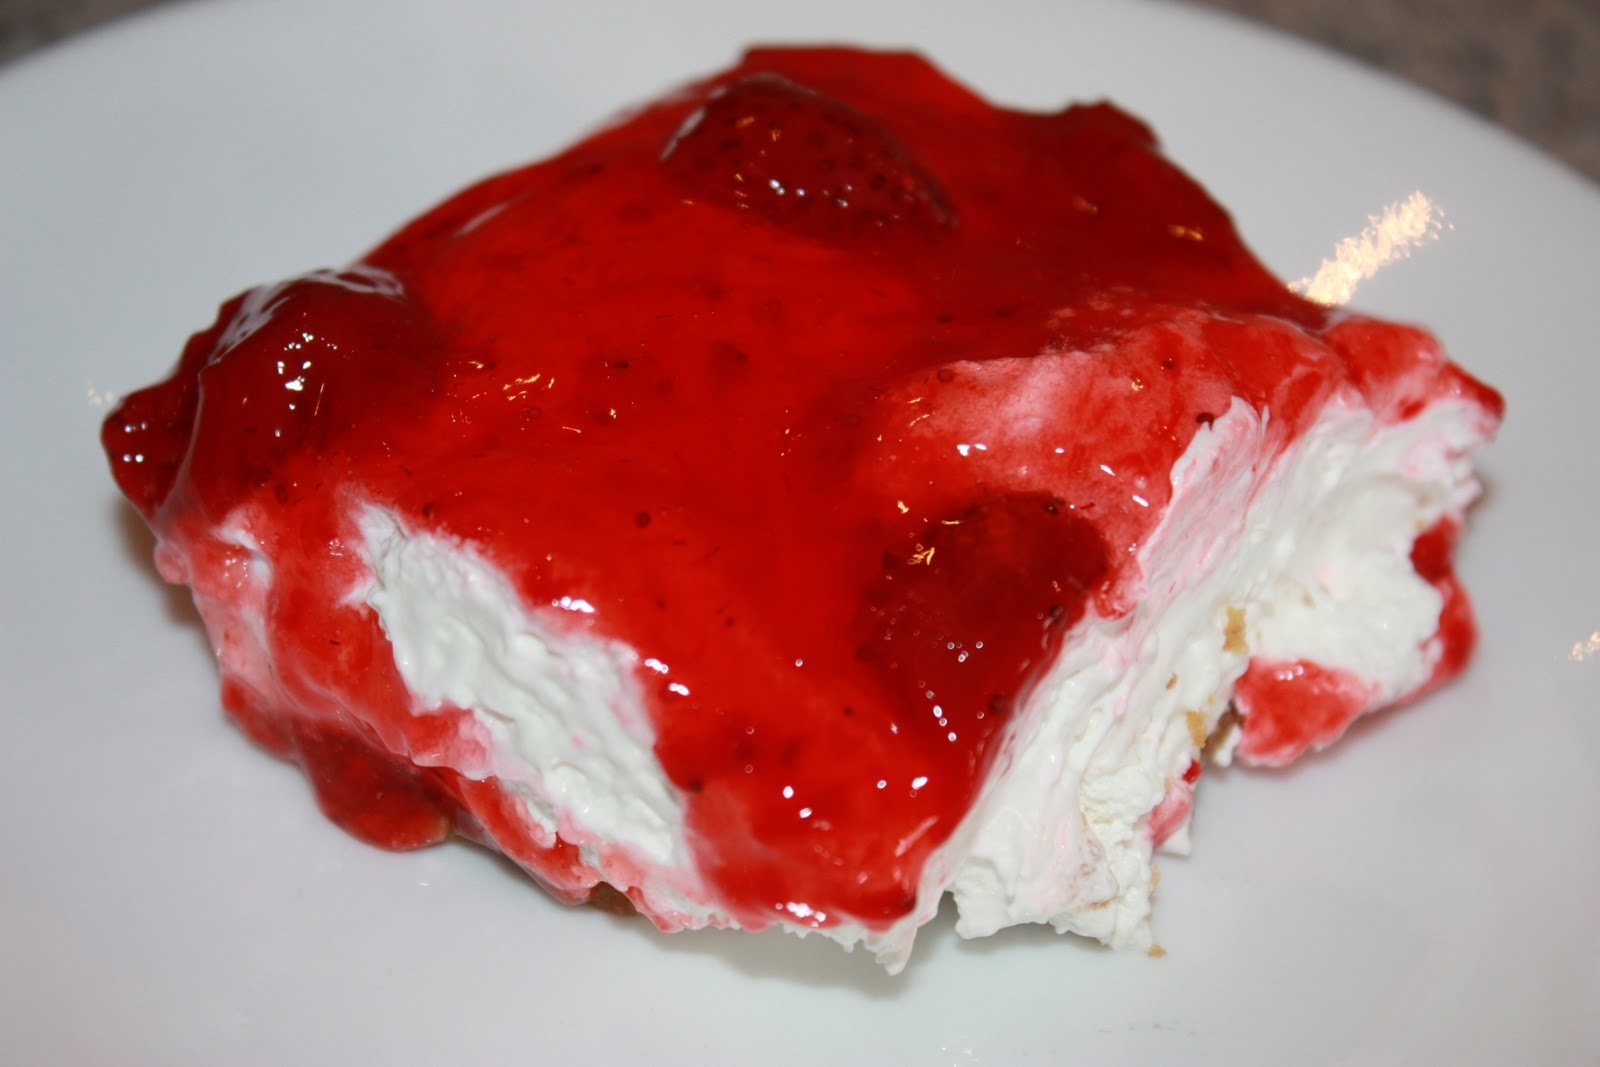 Kendra39;s Recipes: Strawberry Dessert